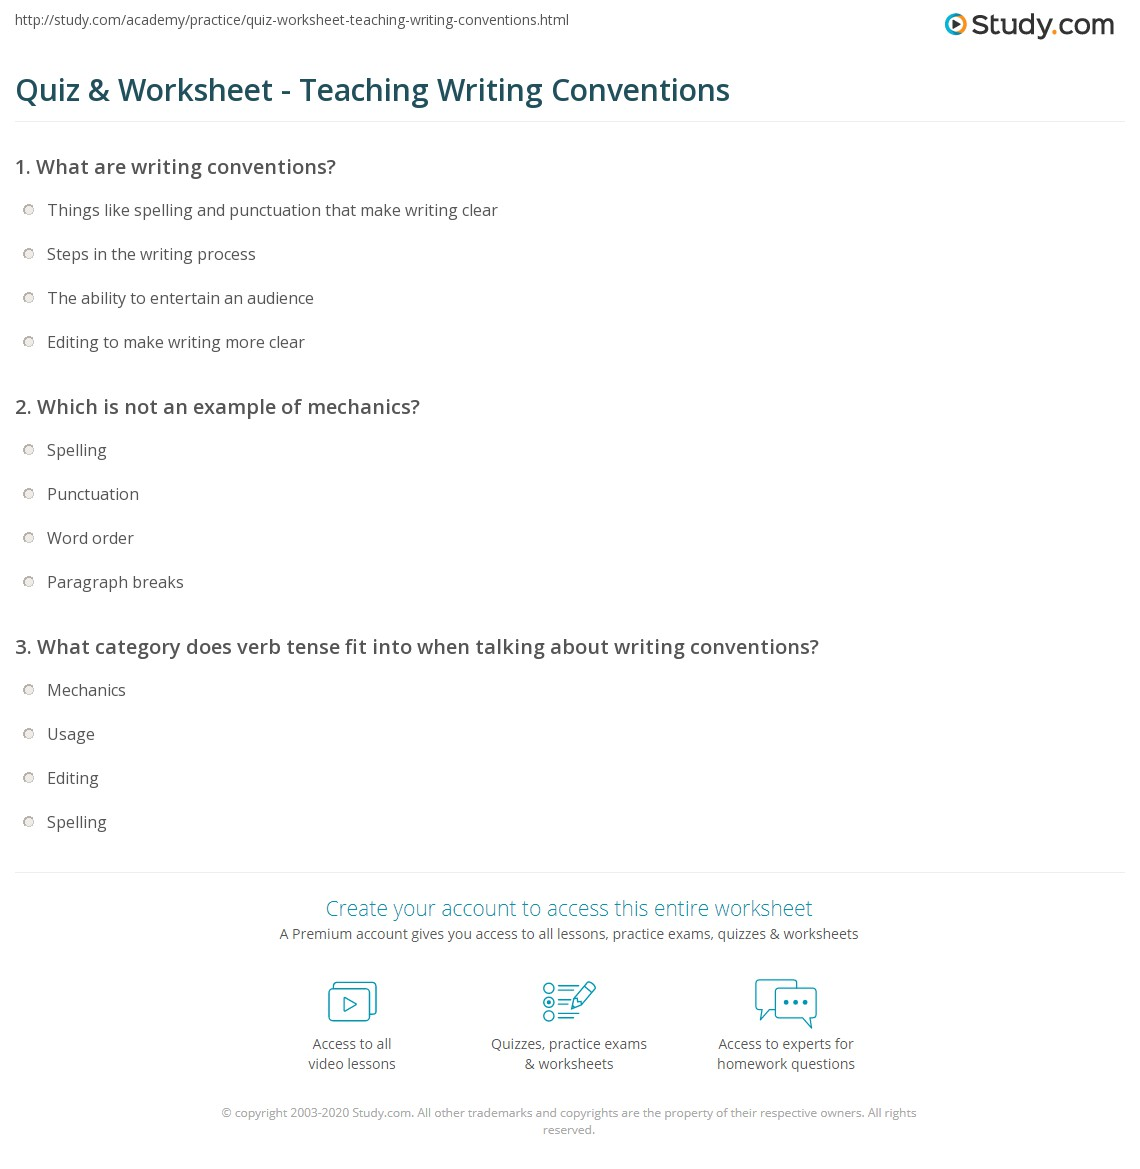 Quiz Worksheet Teaching Writing Conventions – Writing Conventions Worksheets